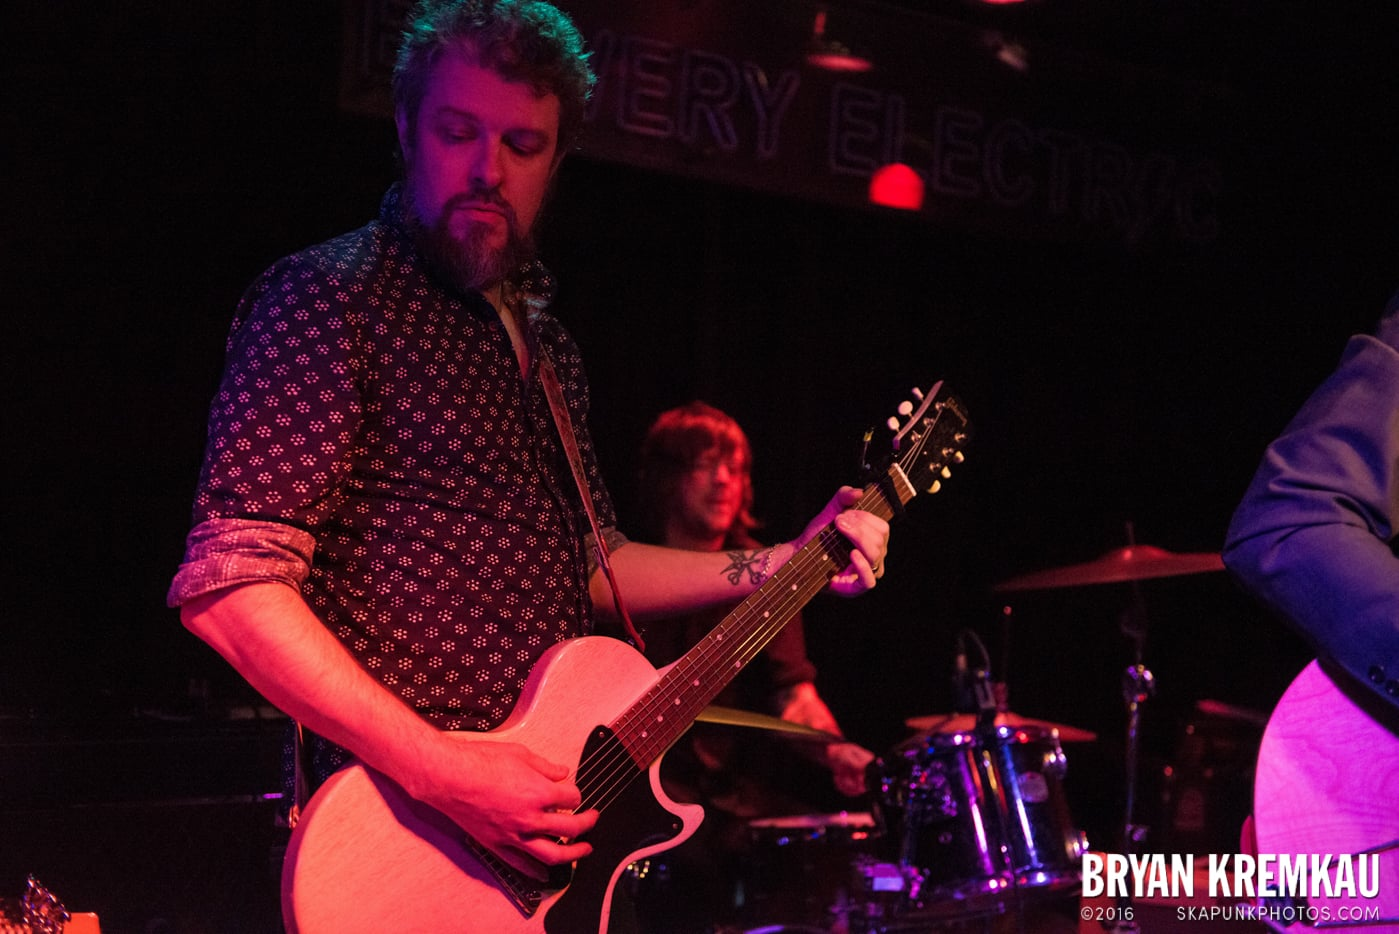 Trapper Schoepp & The Shades @ Bowery Electric, NYC - 11.20.14 (59)